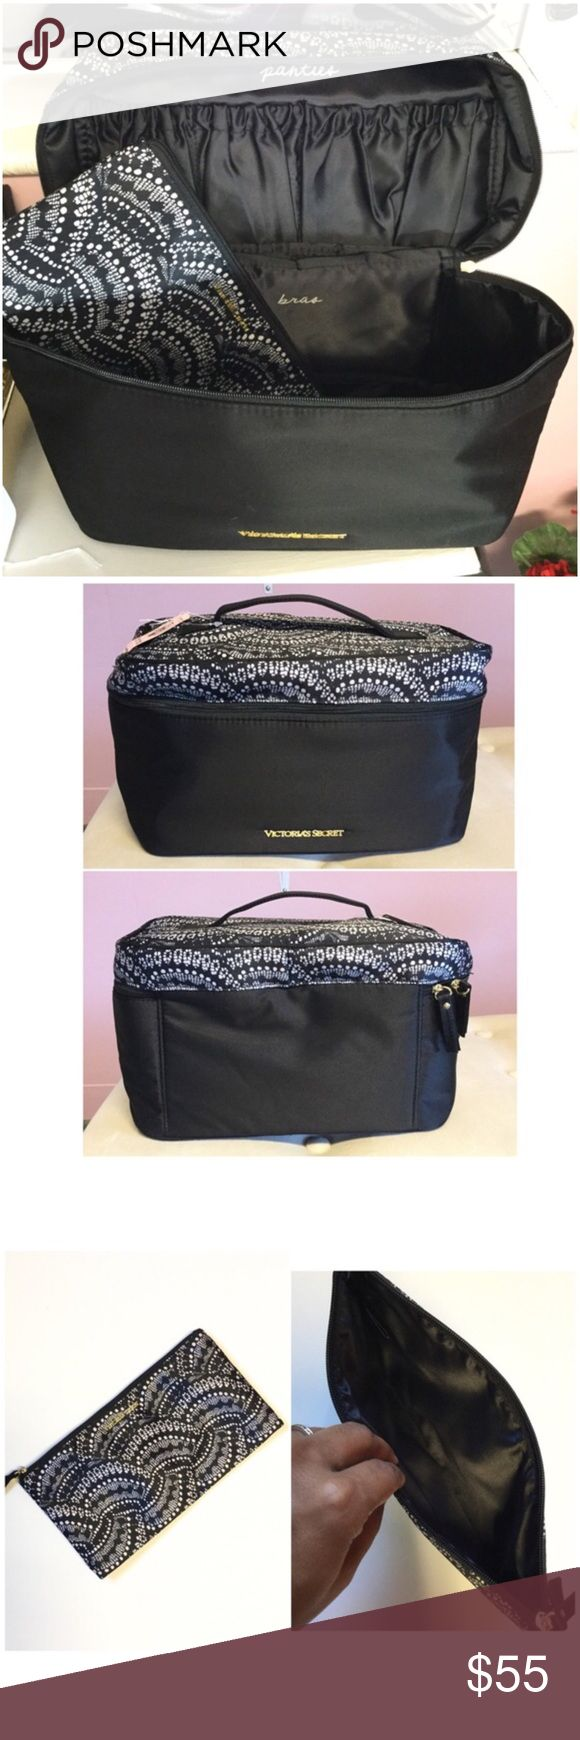 """Victoria's Secret Train Case Set Brand new with tag. Two in one. Approx 11x7x6"""". Lots of room for your intimates and essentials. Victoria's Secret Bags Cosmetic Bags & Cases"""